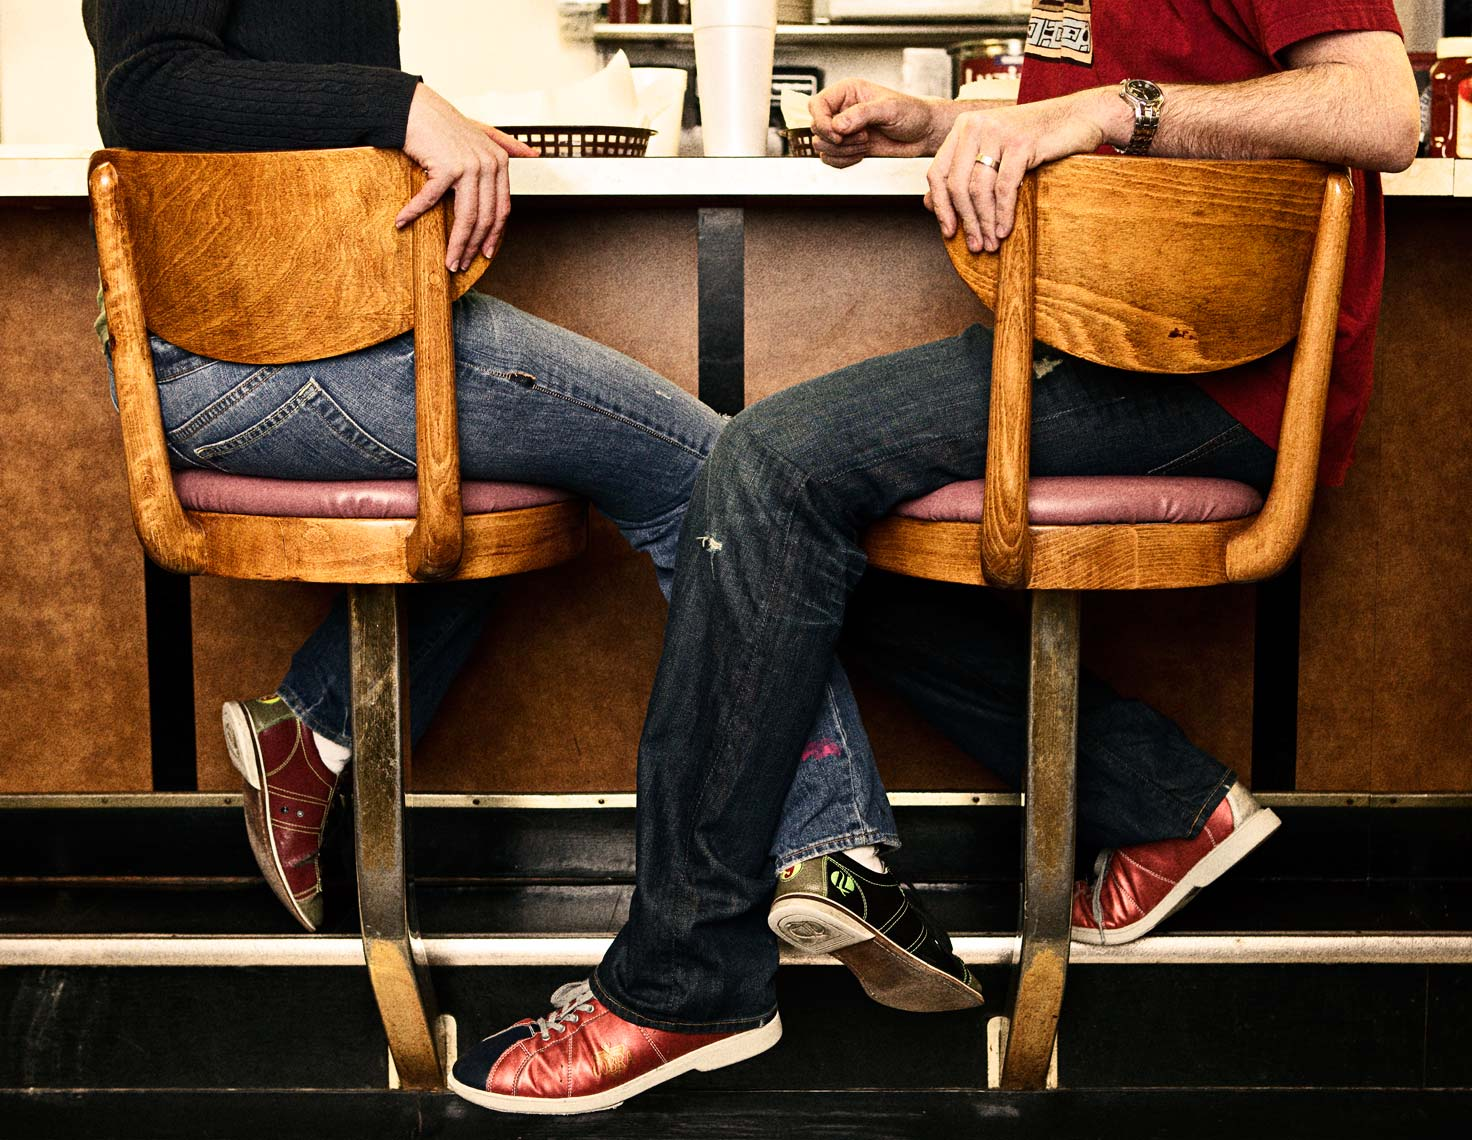 Couple sit on bar stools with legs intertwined. Photography Nick Burchell